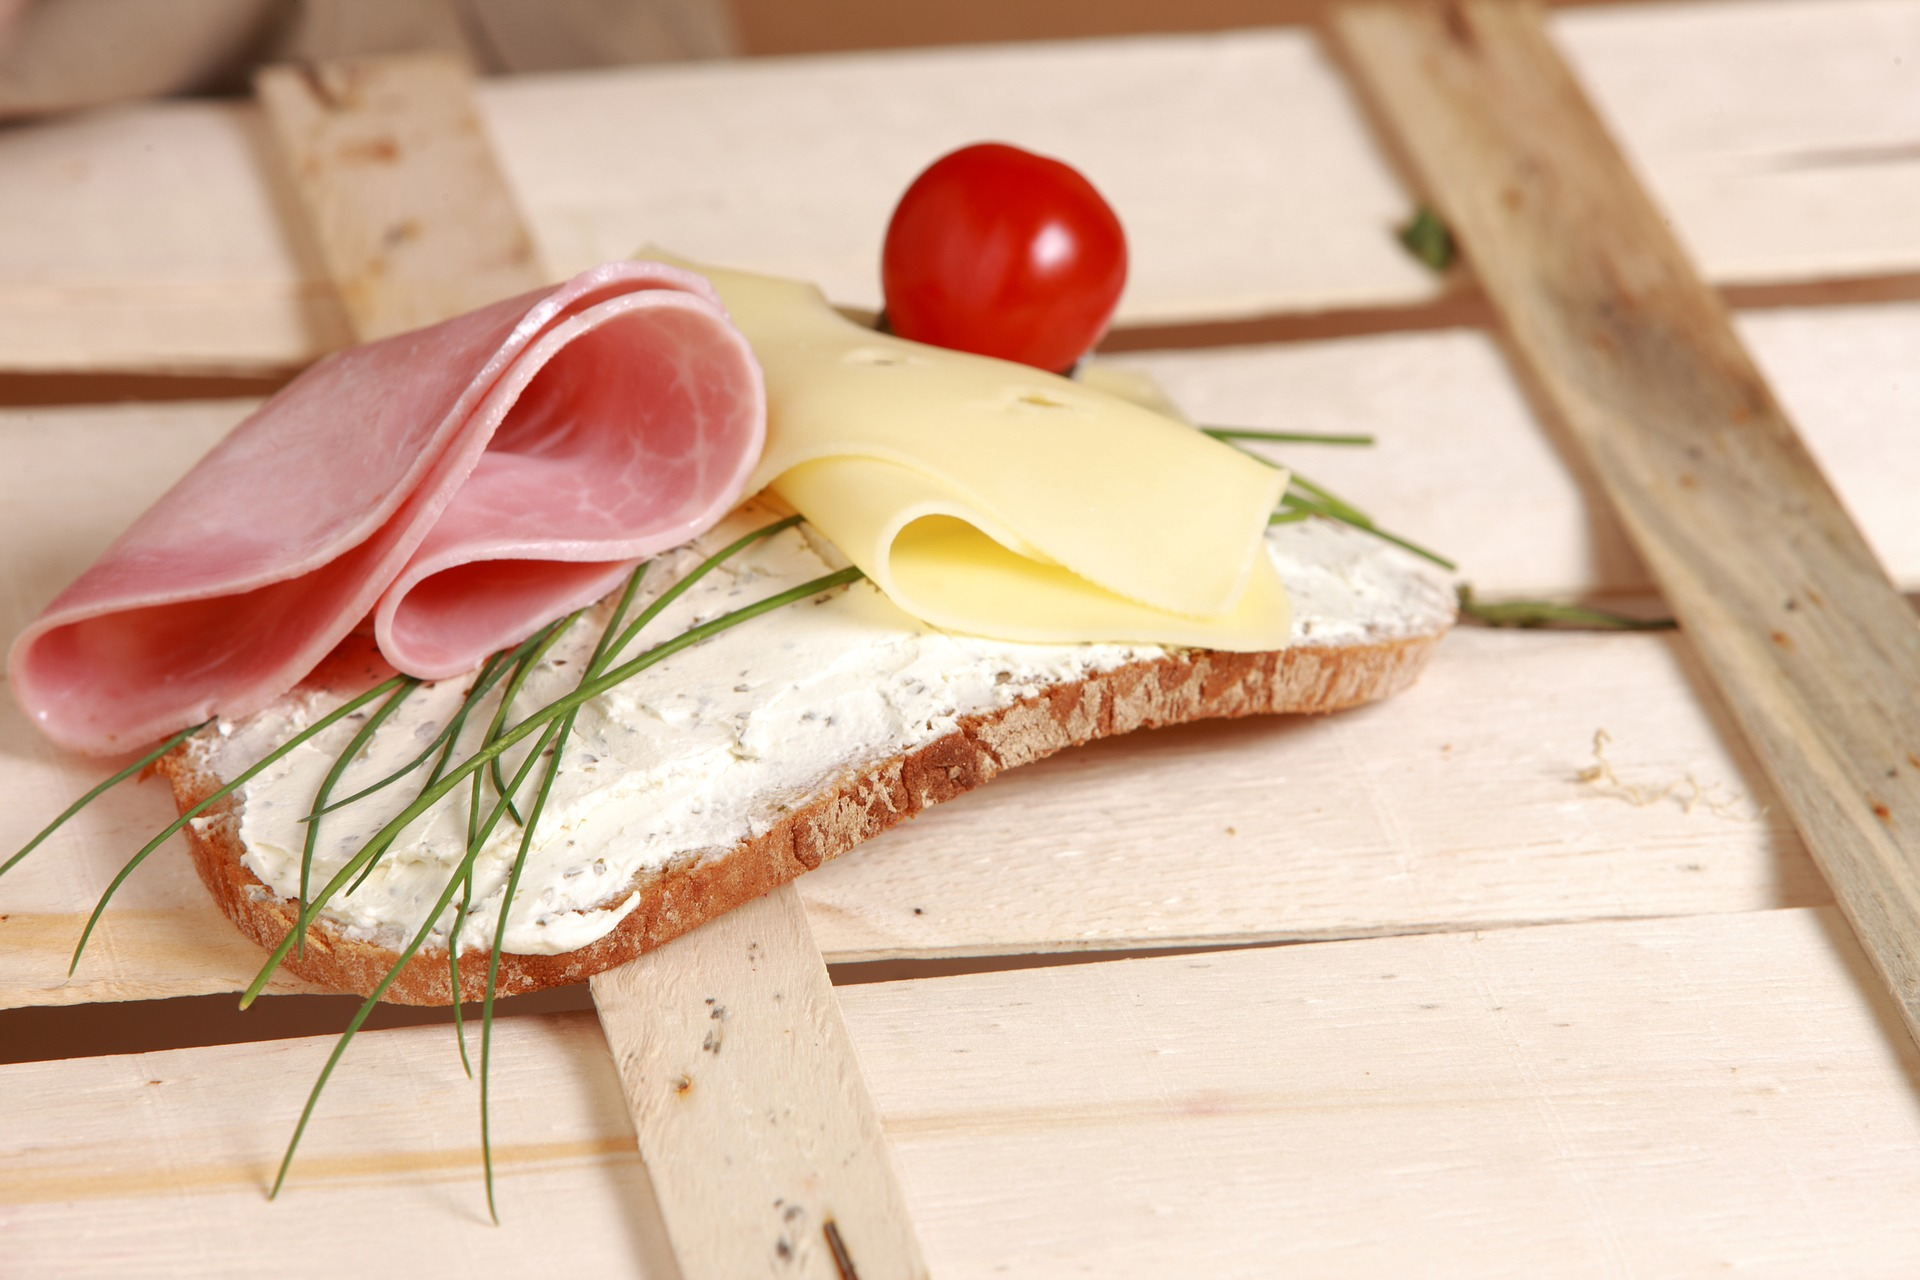 bread-and-butter-1331447_1920